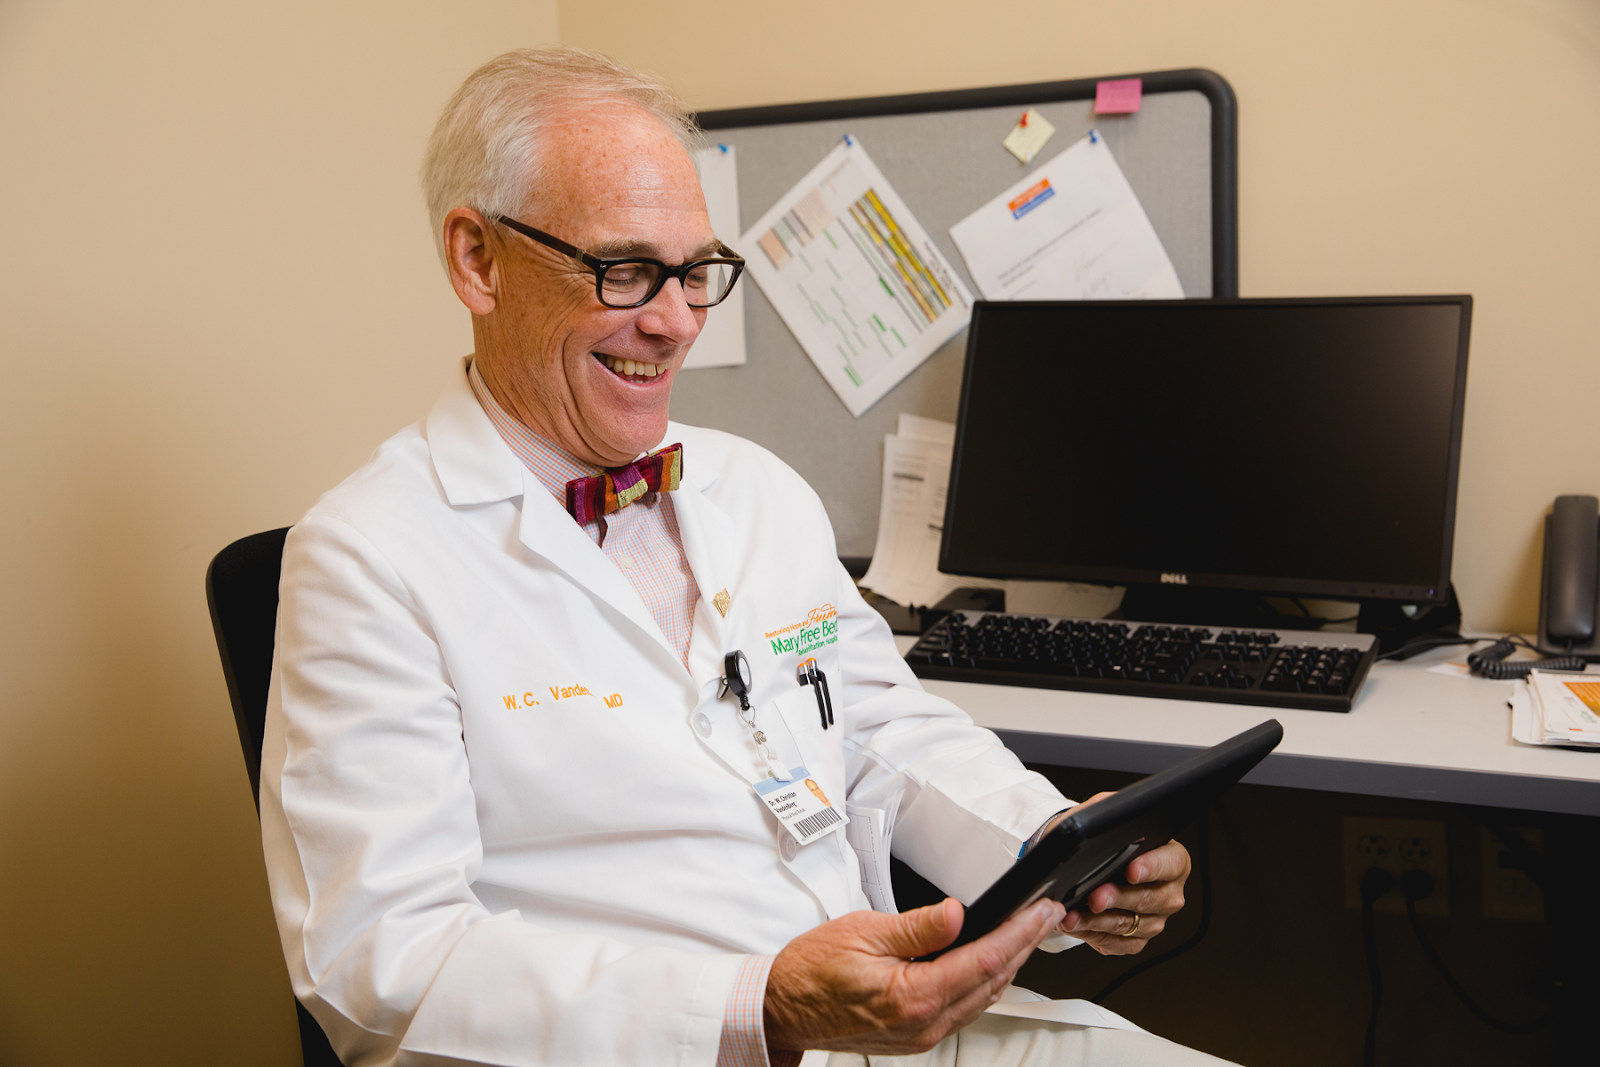 A doctor communicates virtually with a patient via webcam.